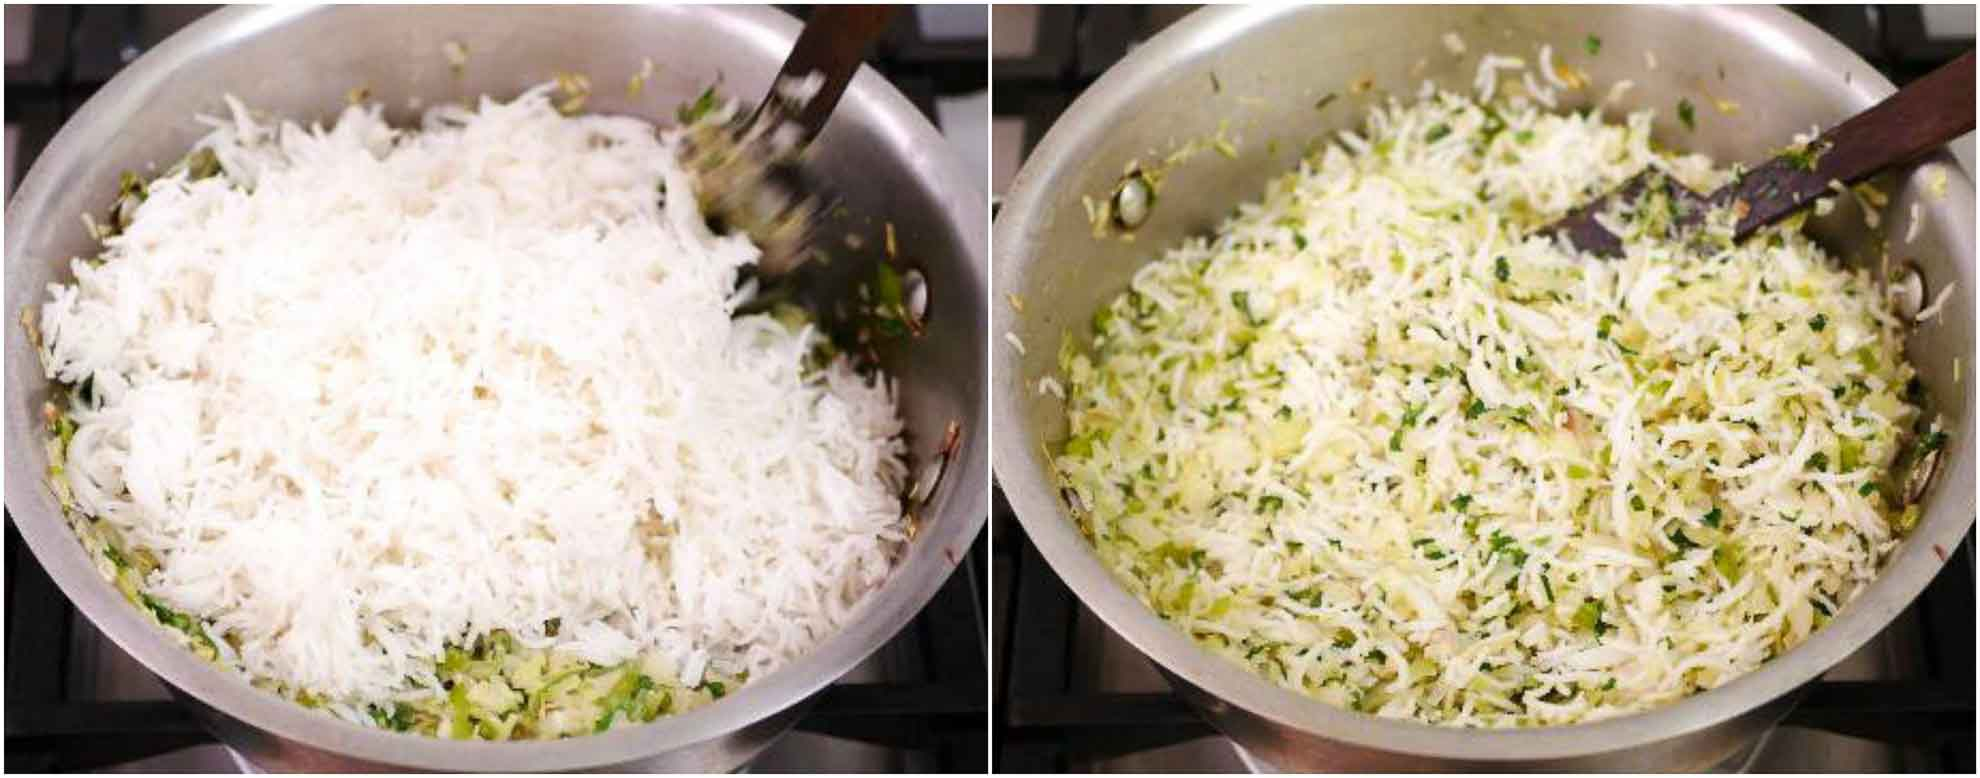 how to cook cabbage rice